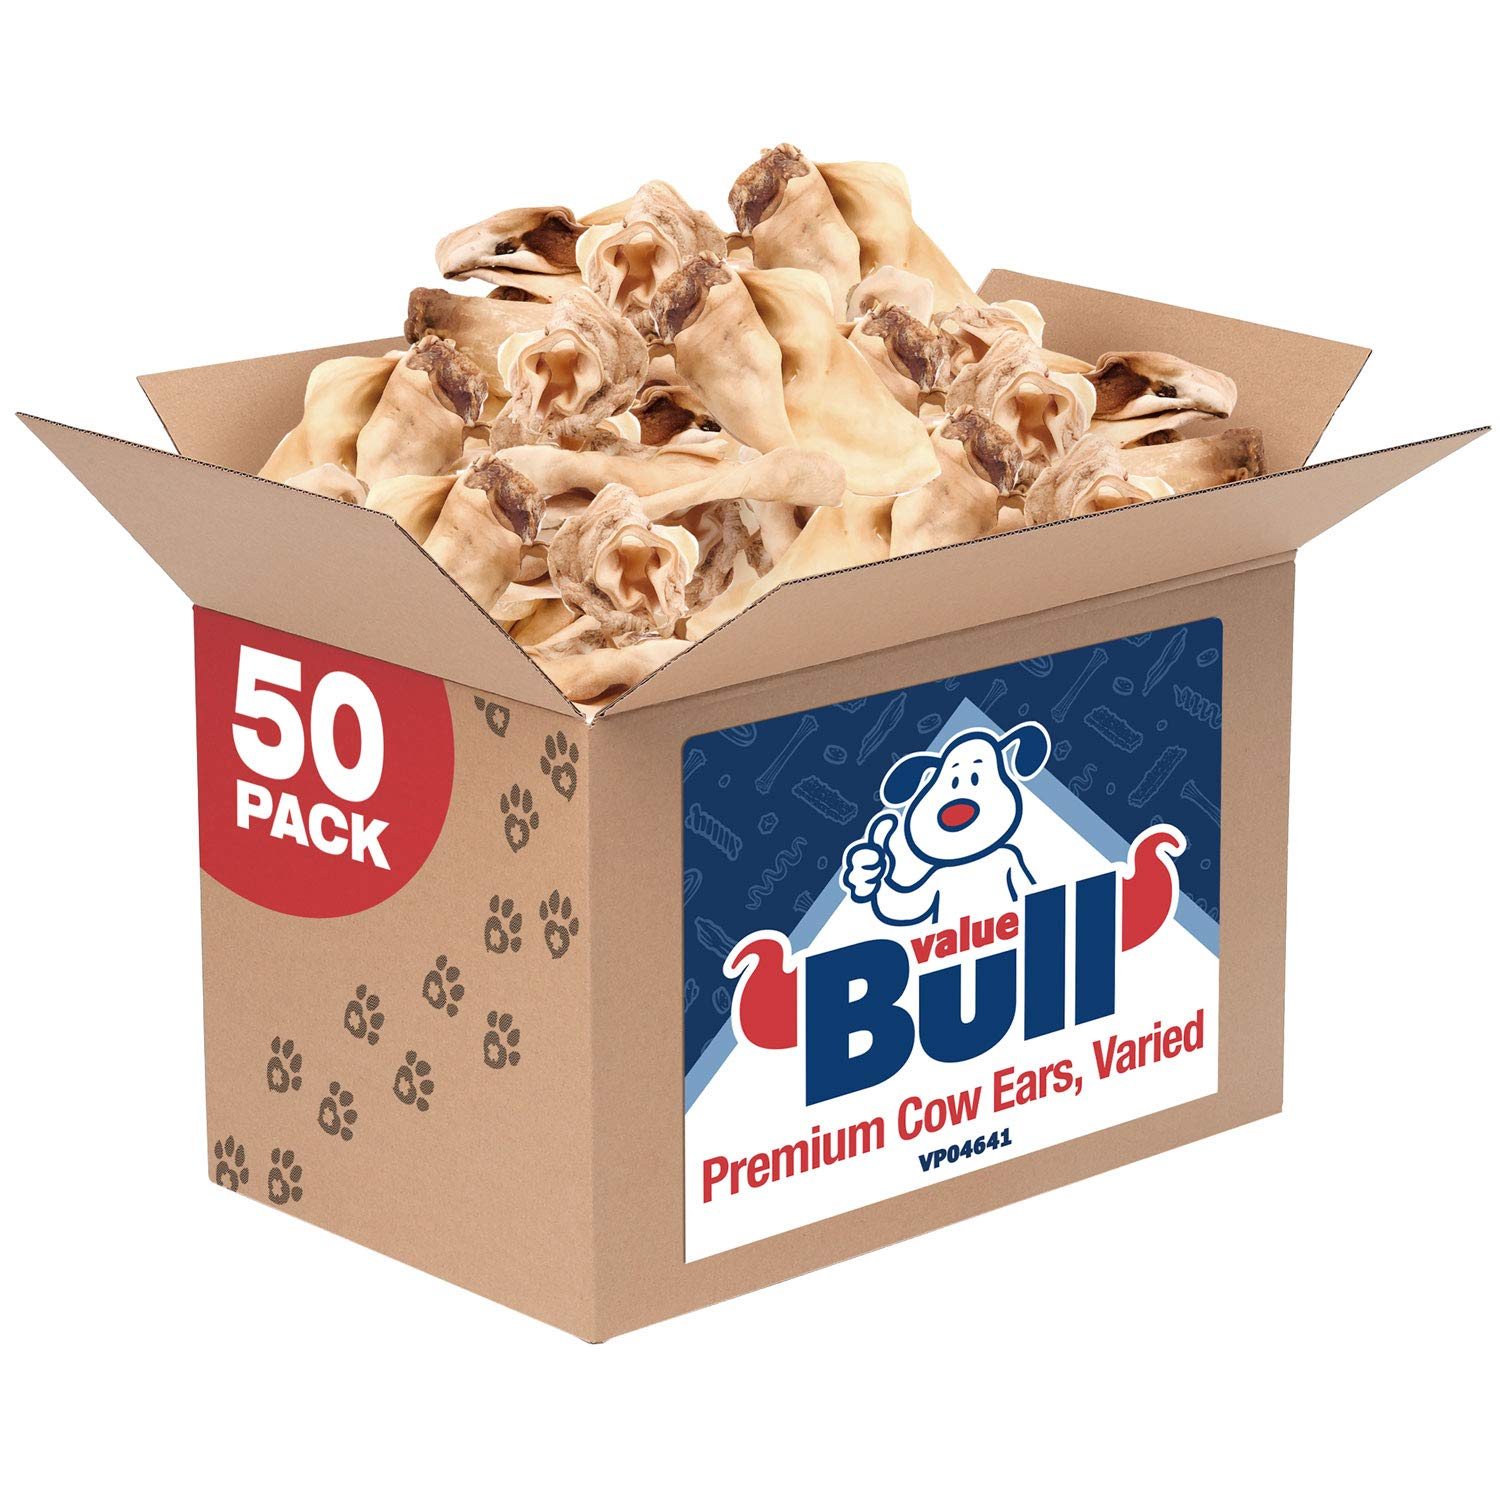 ValueBull Premium Cow Ears, Varied Sizes/Shapes, 50 Count - Angus Beef Dog Chews, Grass-Fed, Single Ingredient by ValueBull